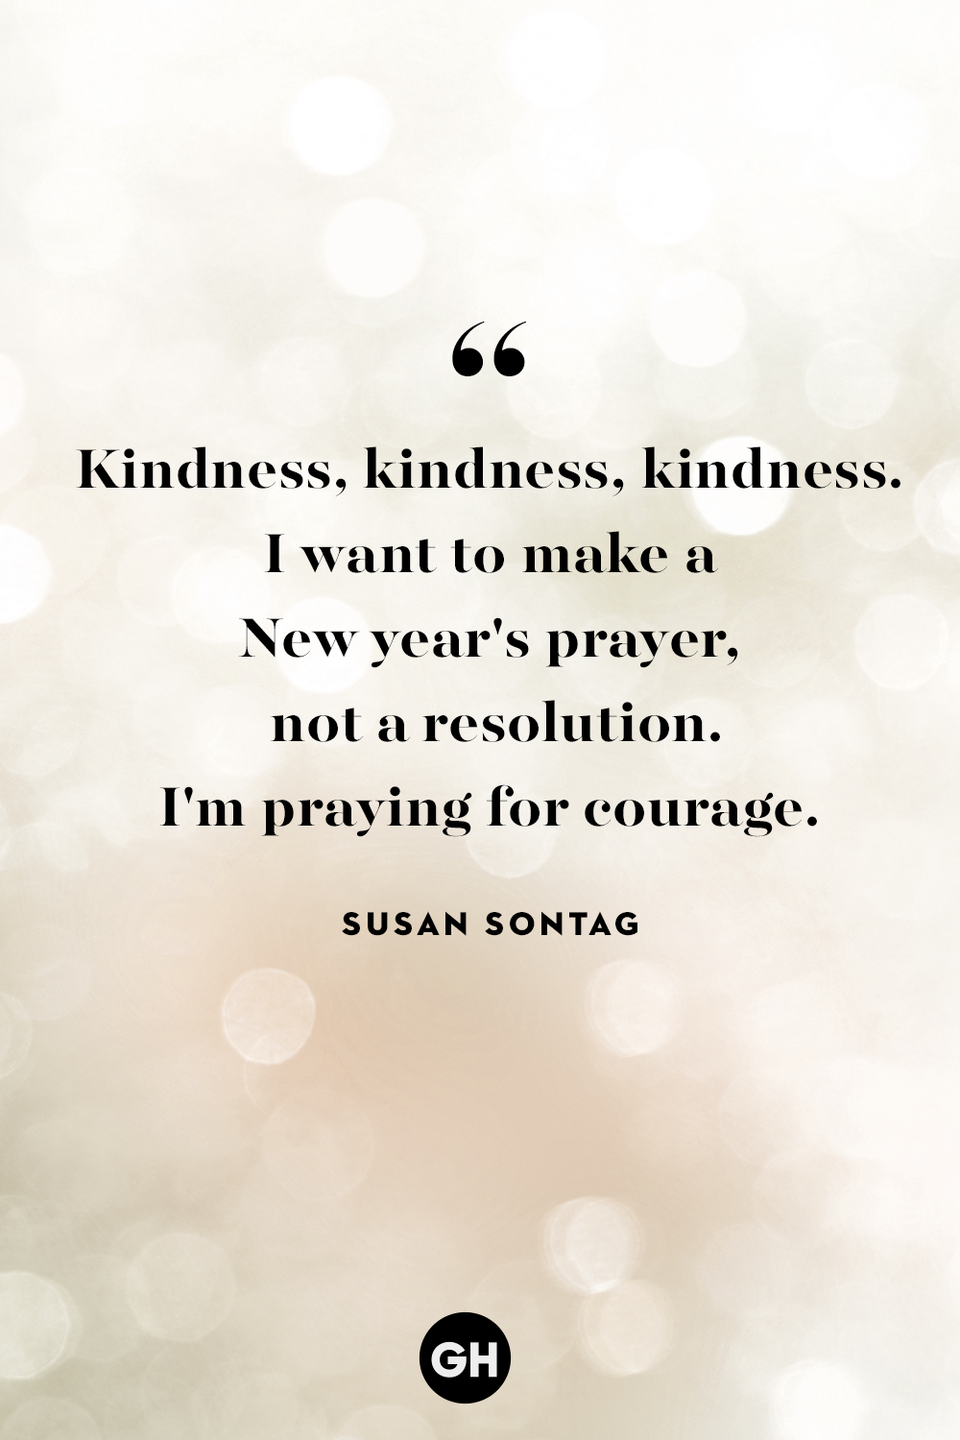 <p>Kindness, kindness, kindness. I want to make a New year's prayer, not a resolution. I'm praying for courage.</p>